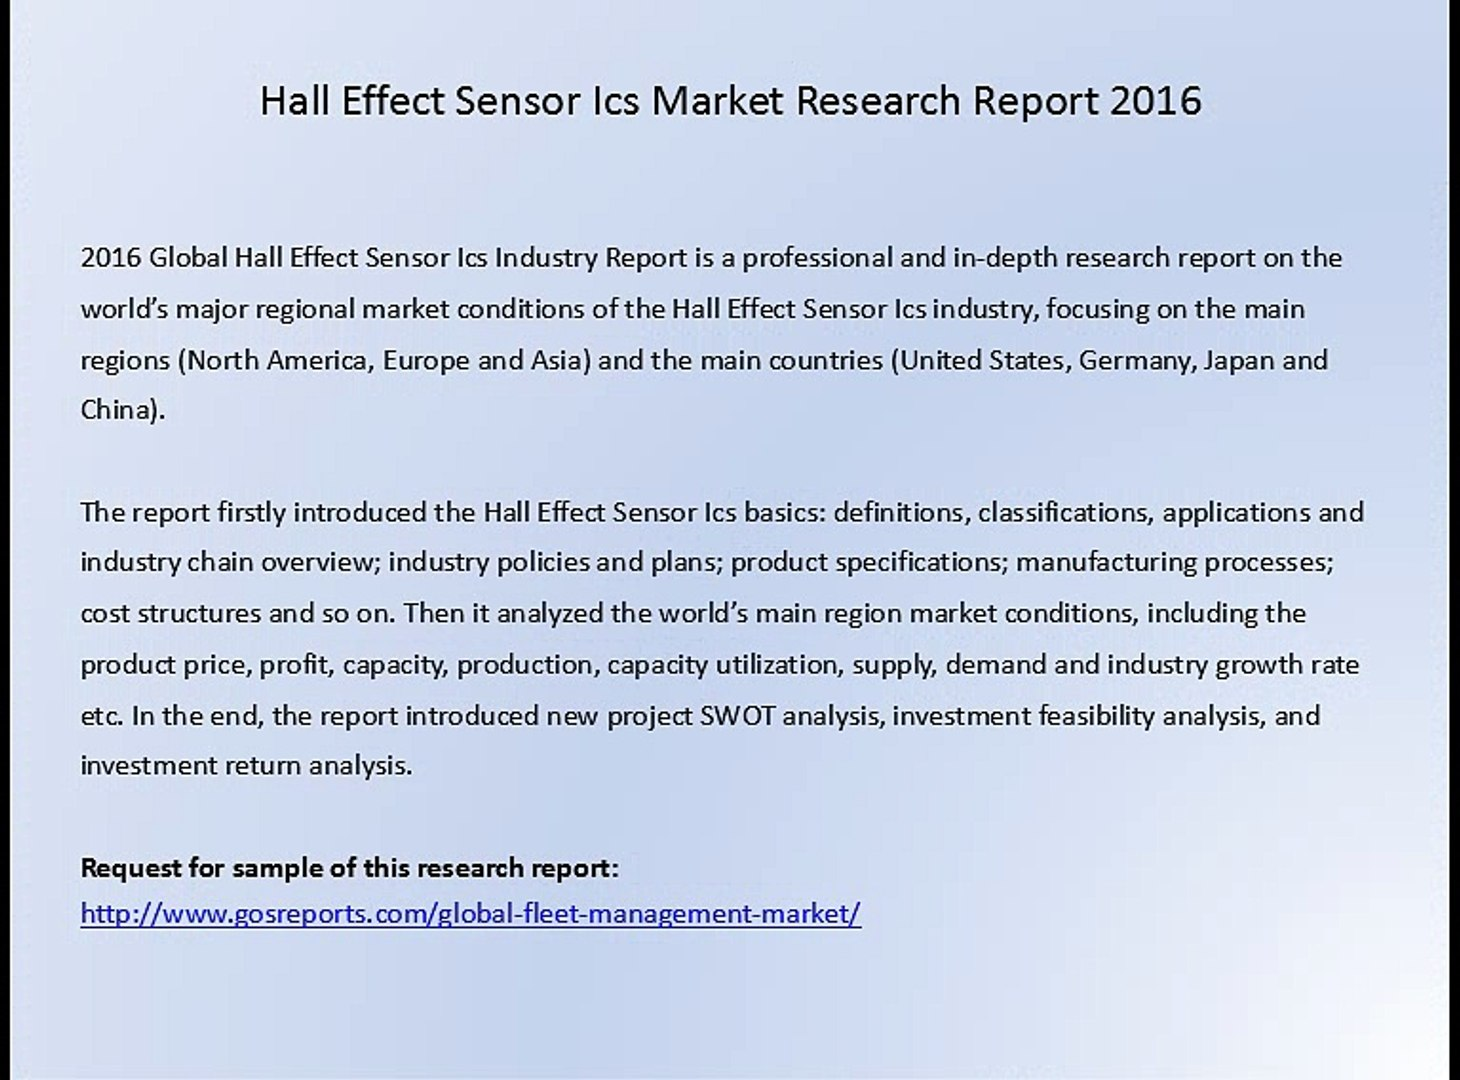 Hall Effect Sensor Ics Market Research Report 2016